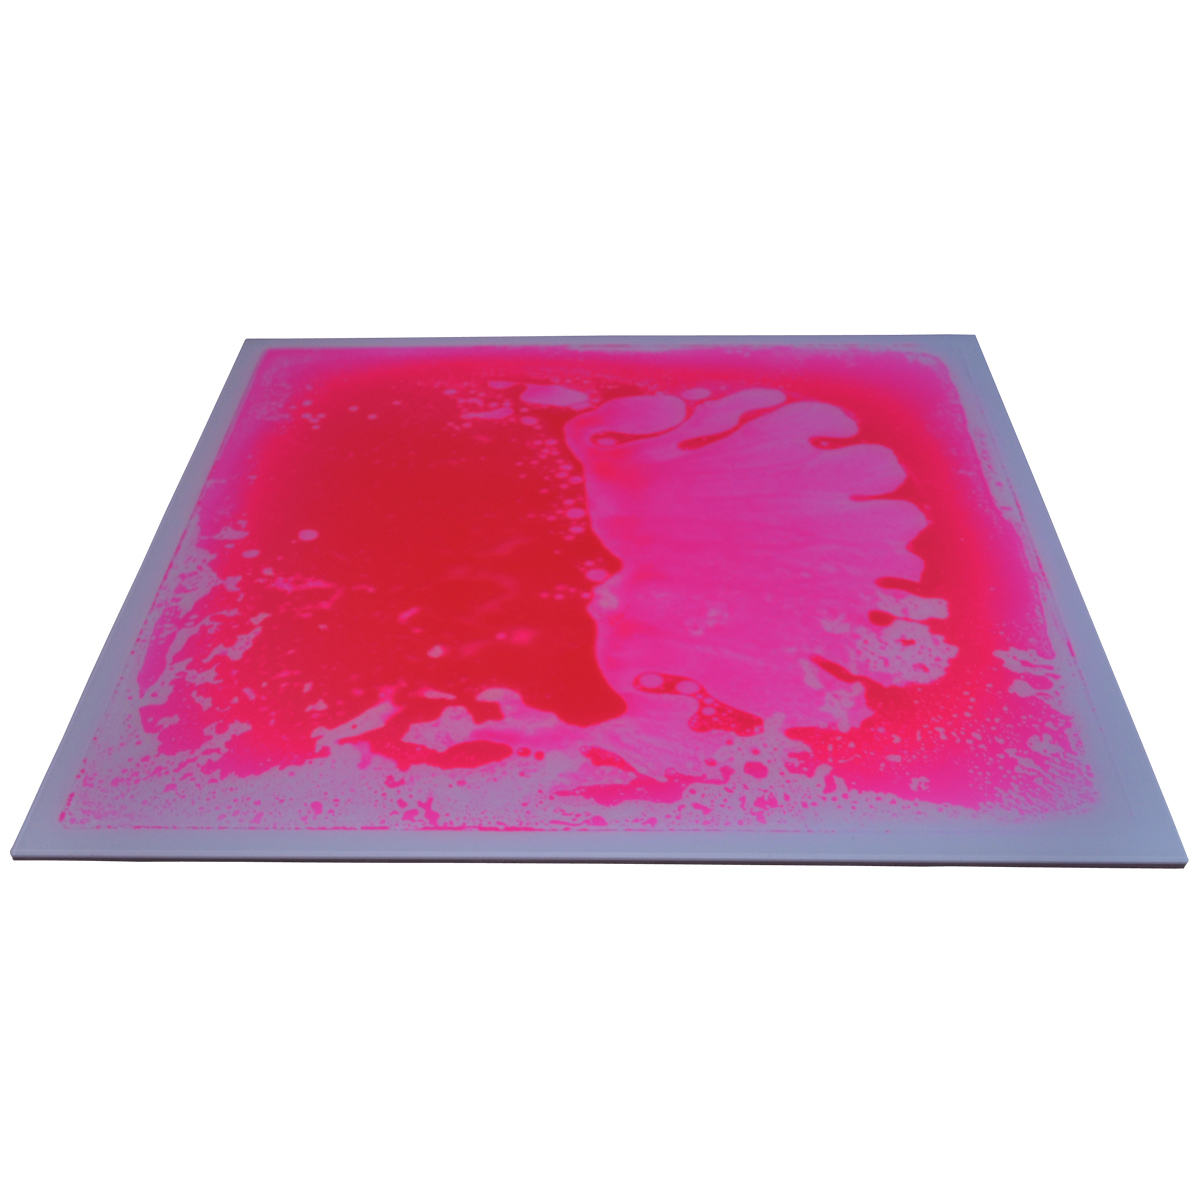 Colorful liquid floor tile creative dance floor for bar nightclub colorful liquid floor tile creative dance floor for bar nightclub decoration 6 pieces 16 sqft pink floor tiles dailygadgetfo Image collections